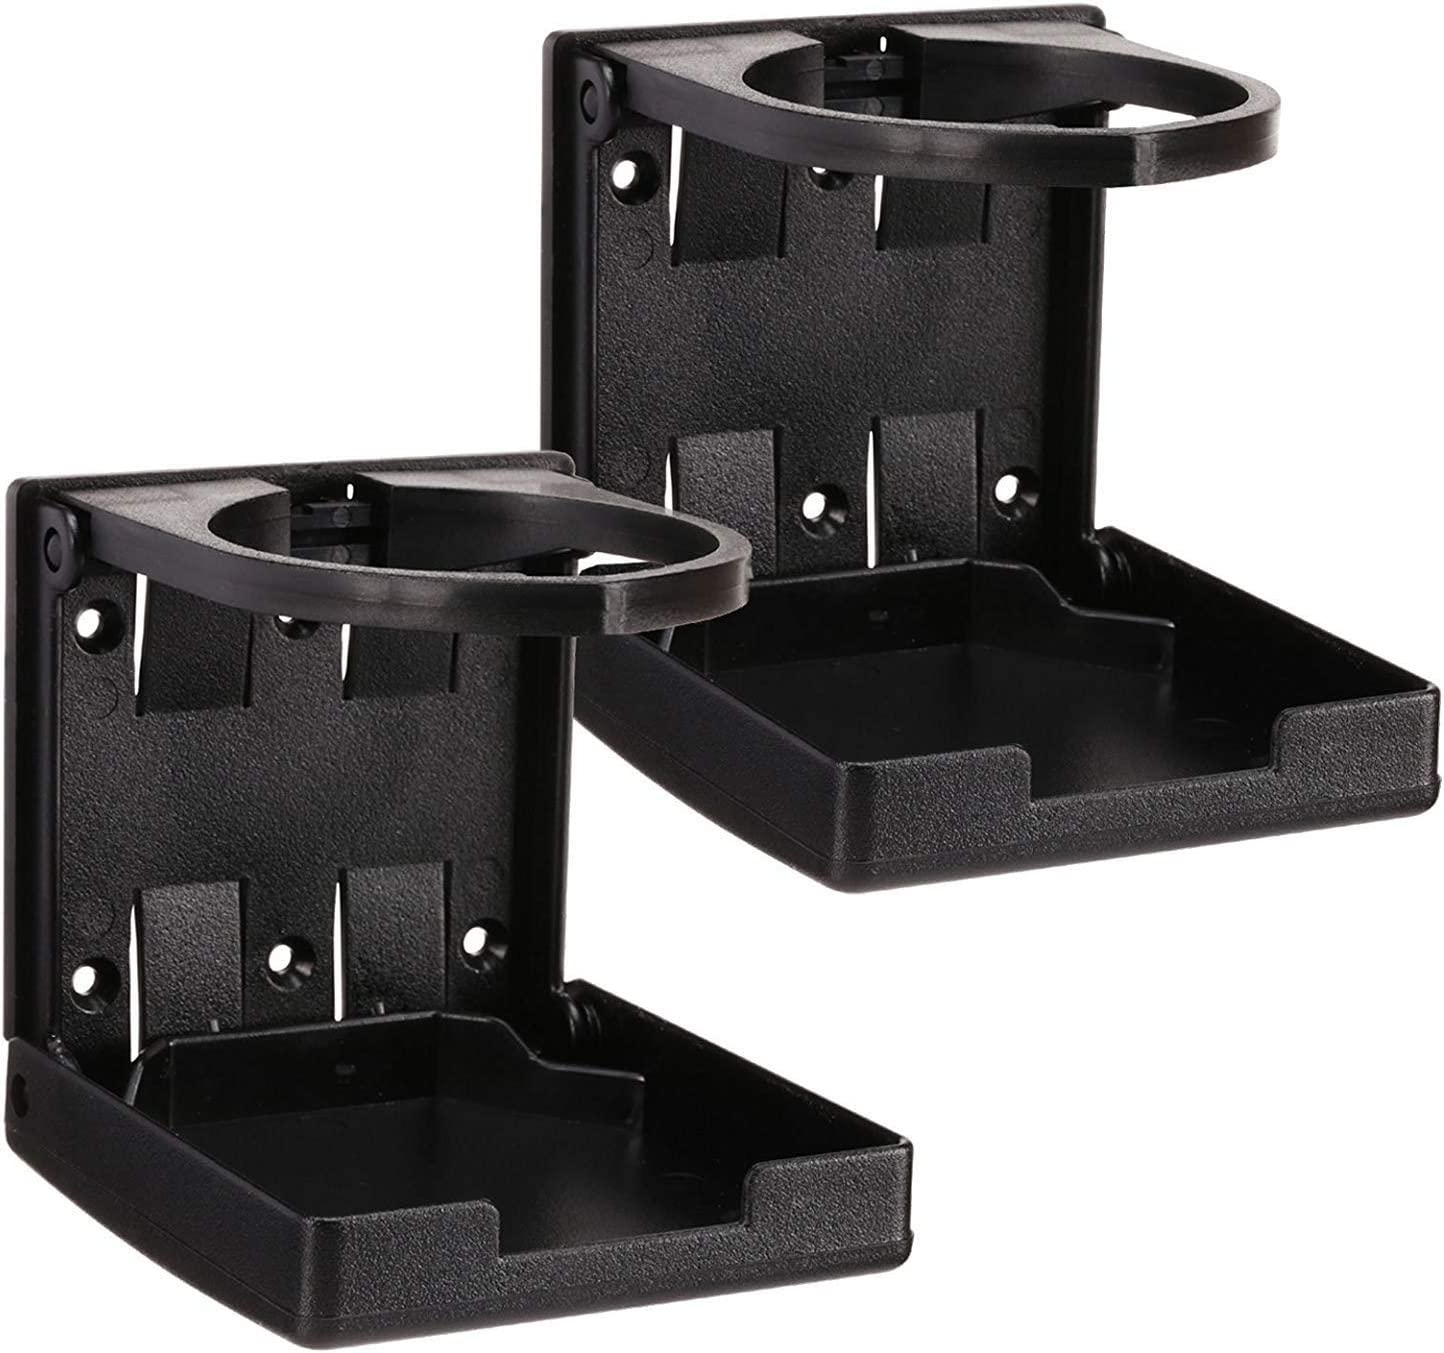 Nicedier Car Mounted Cup Holders Auto Car Vehicle Cup Can Holders Container Hook for Truck Interior 2pcs Black+Grey